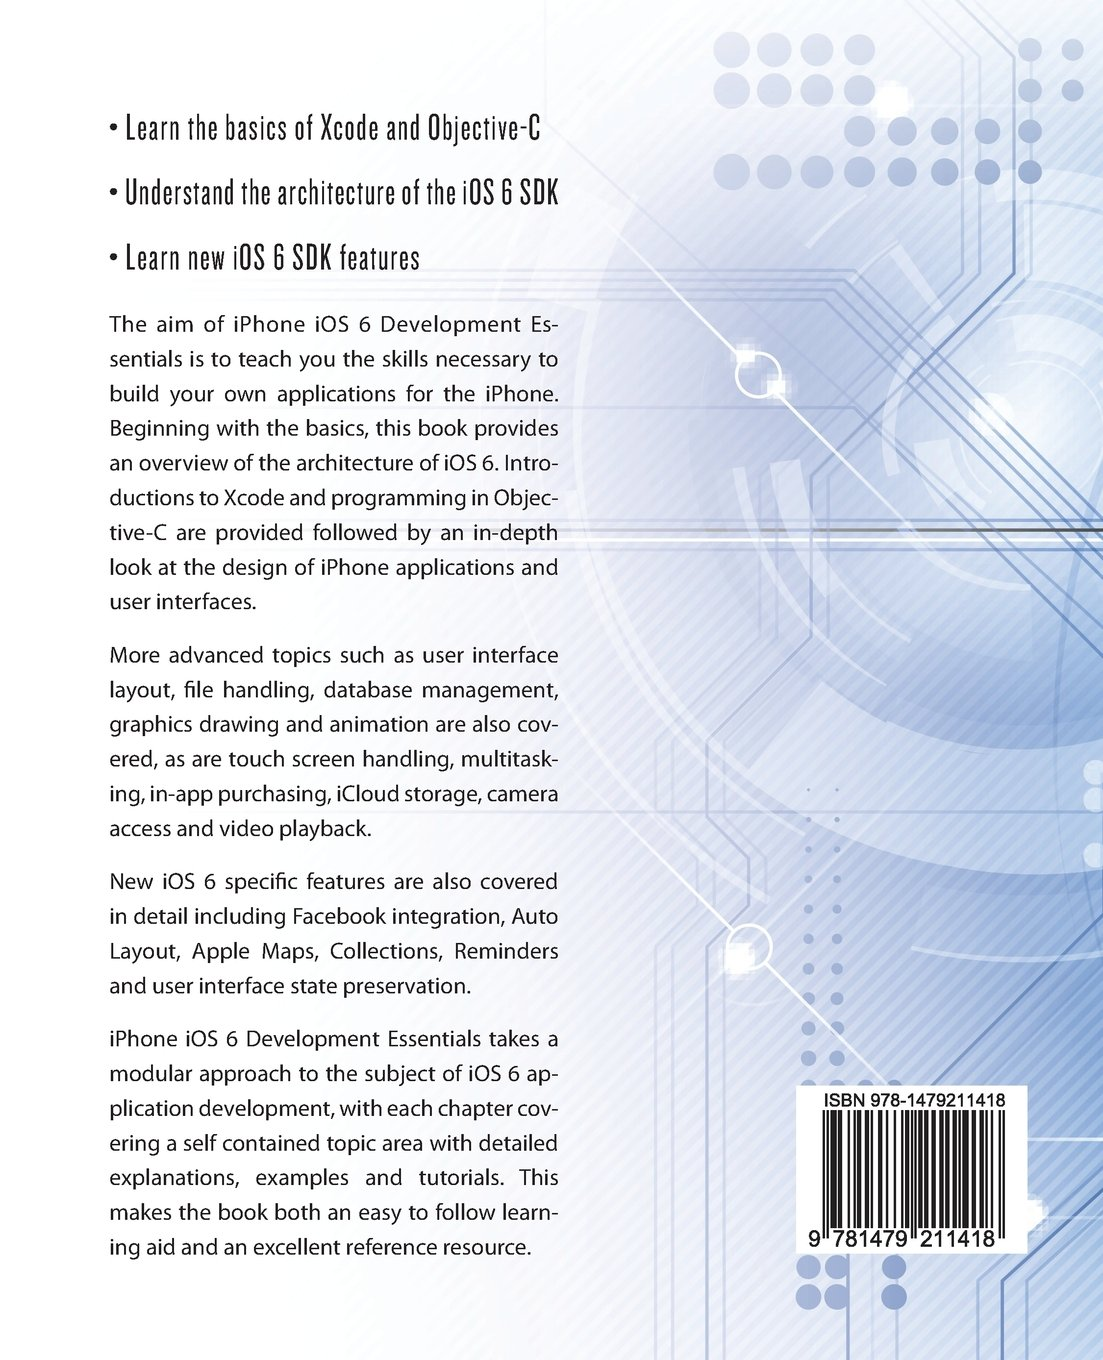 Amazon com: iPhone iOS 6 Development Essentials